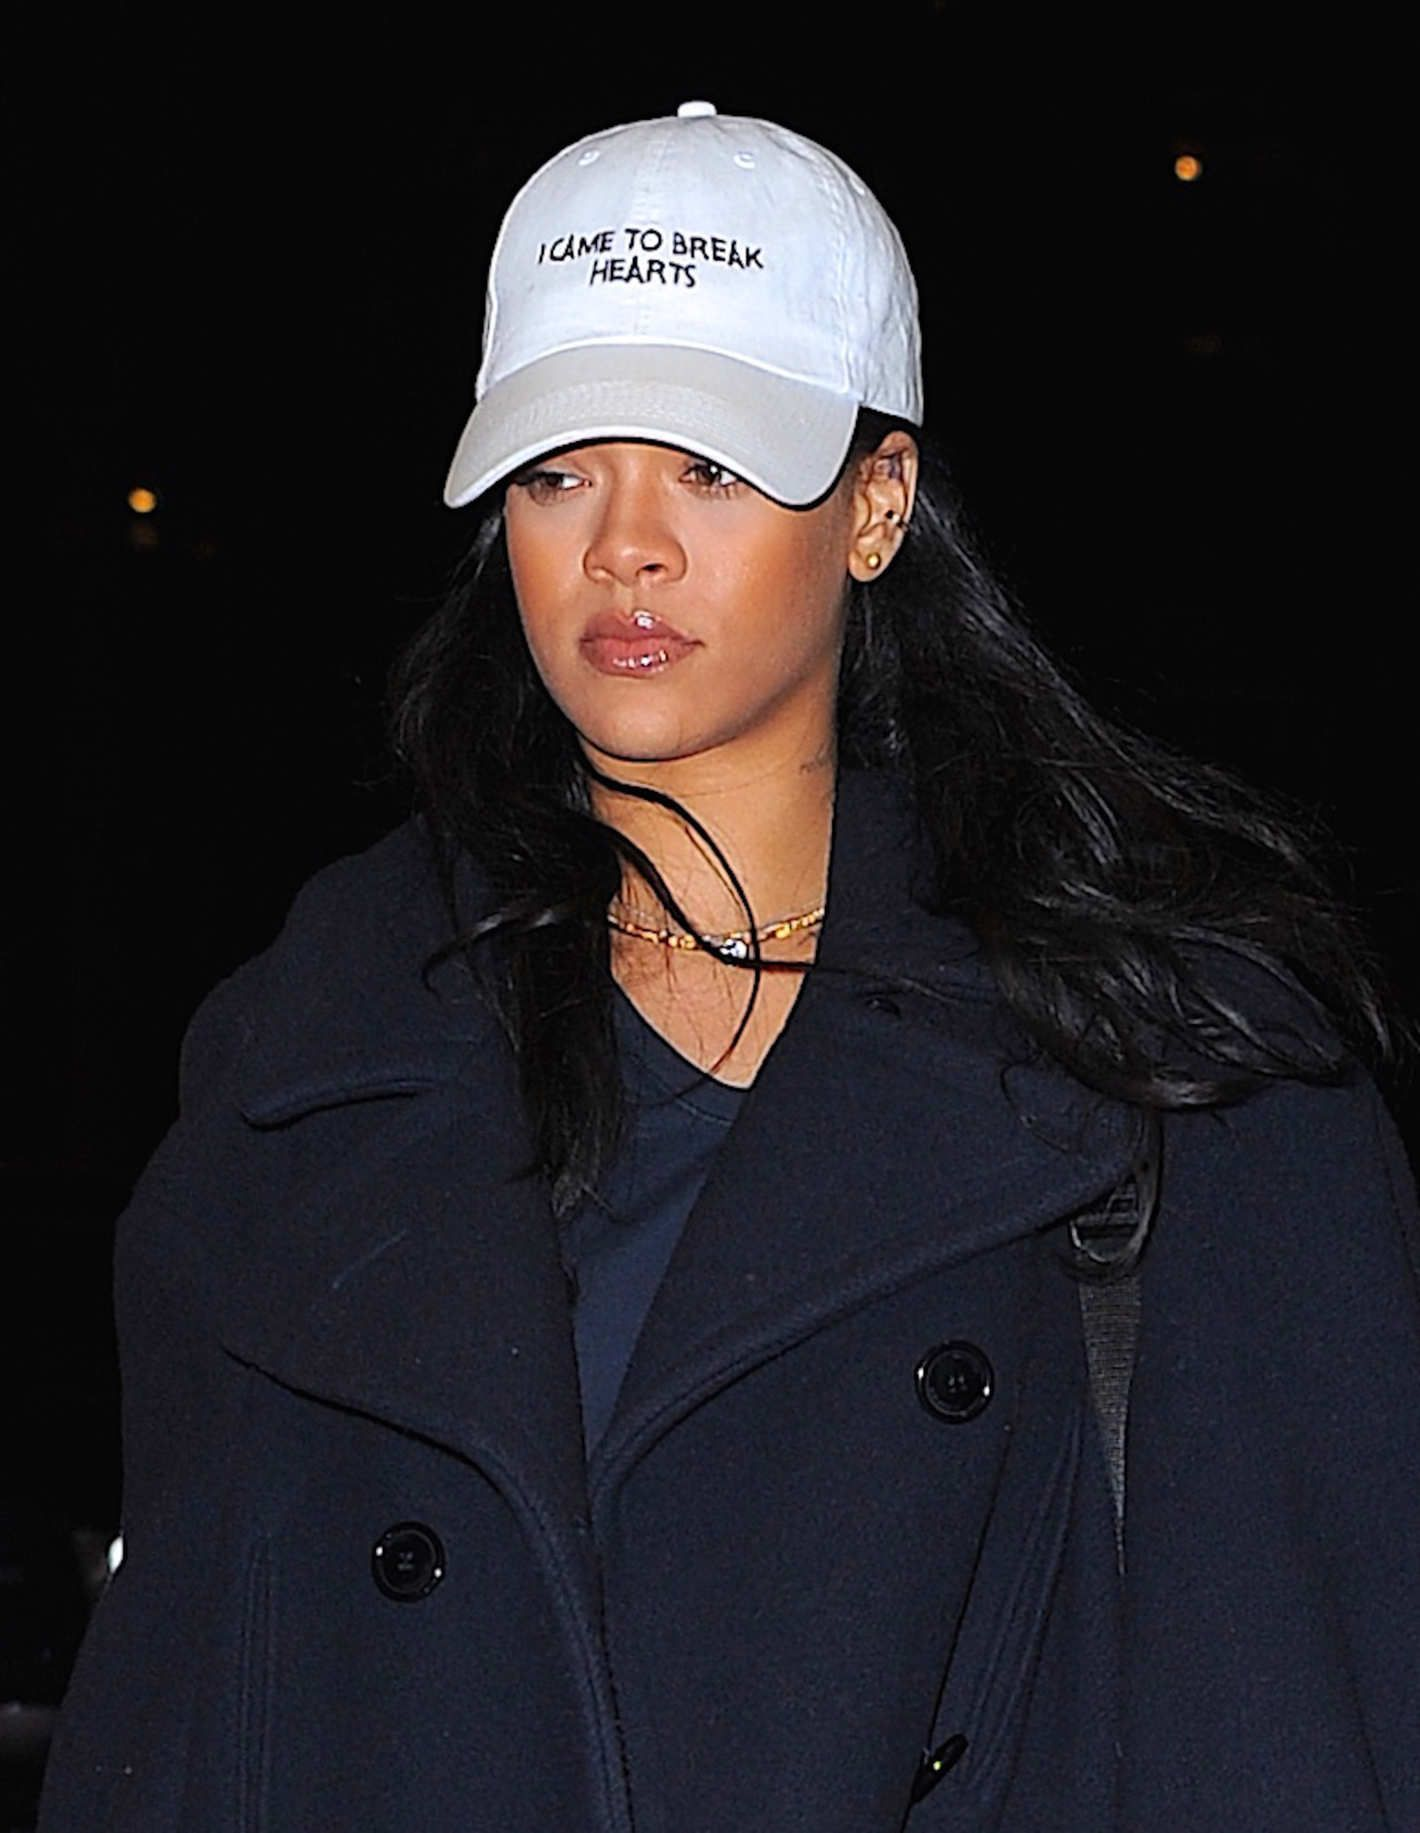 ef0b019f50a Where to Get Rihanna s Dad Hat